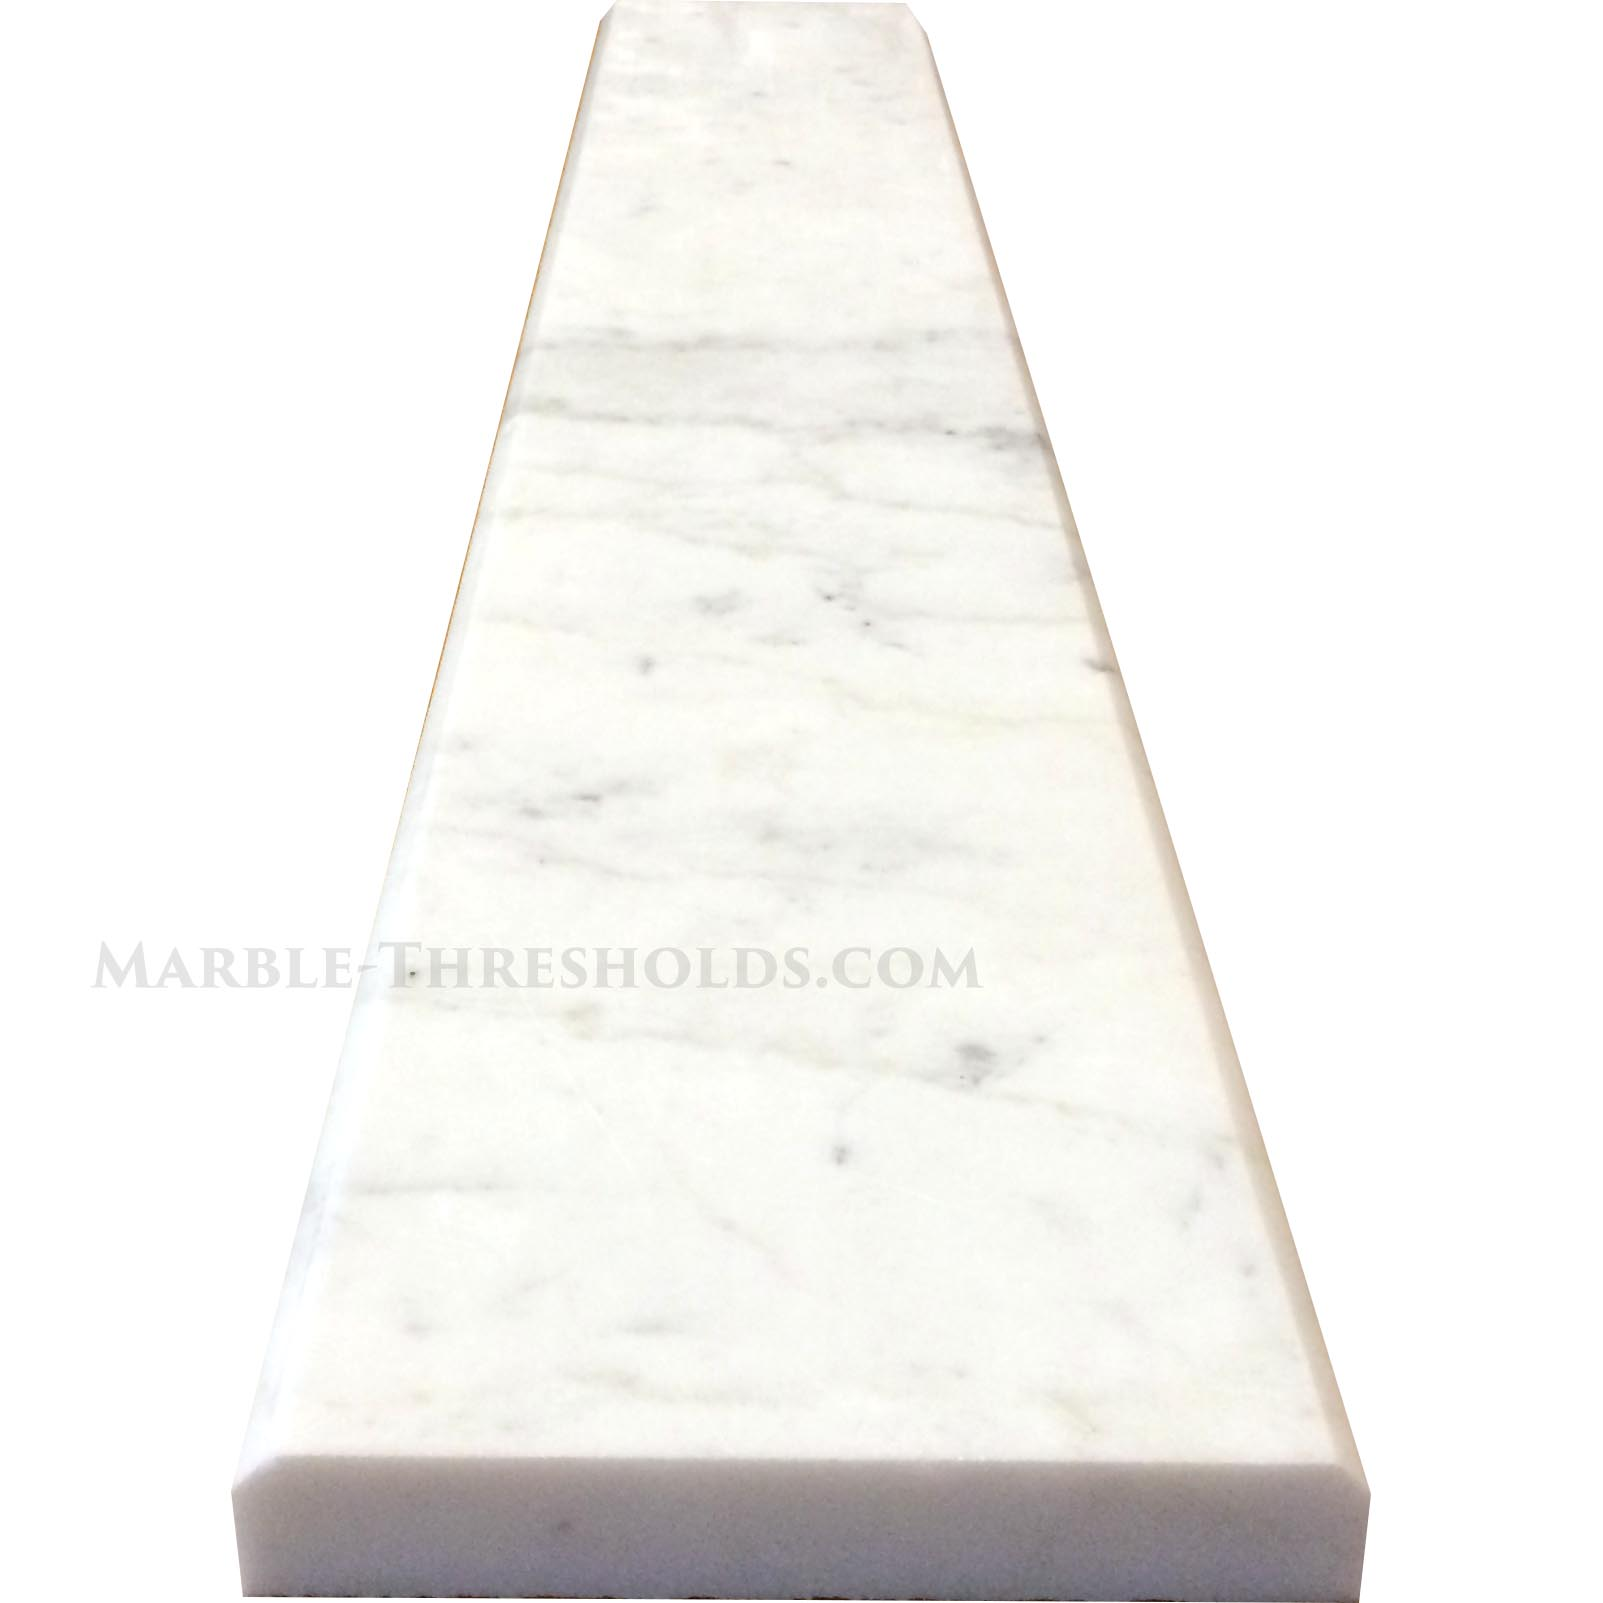 Calacatta Gold Marble Saddle  sc 1 st  Marble Thresholds & Calacatta Gold Marble Saddles and Door Thresholds - Size 36 x 4 x 3/4